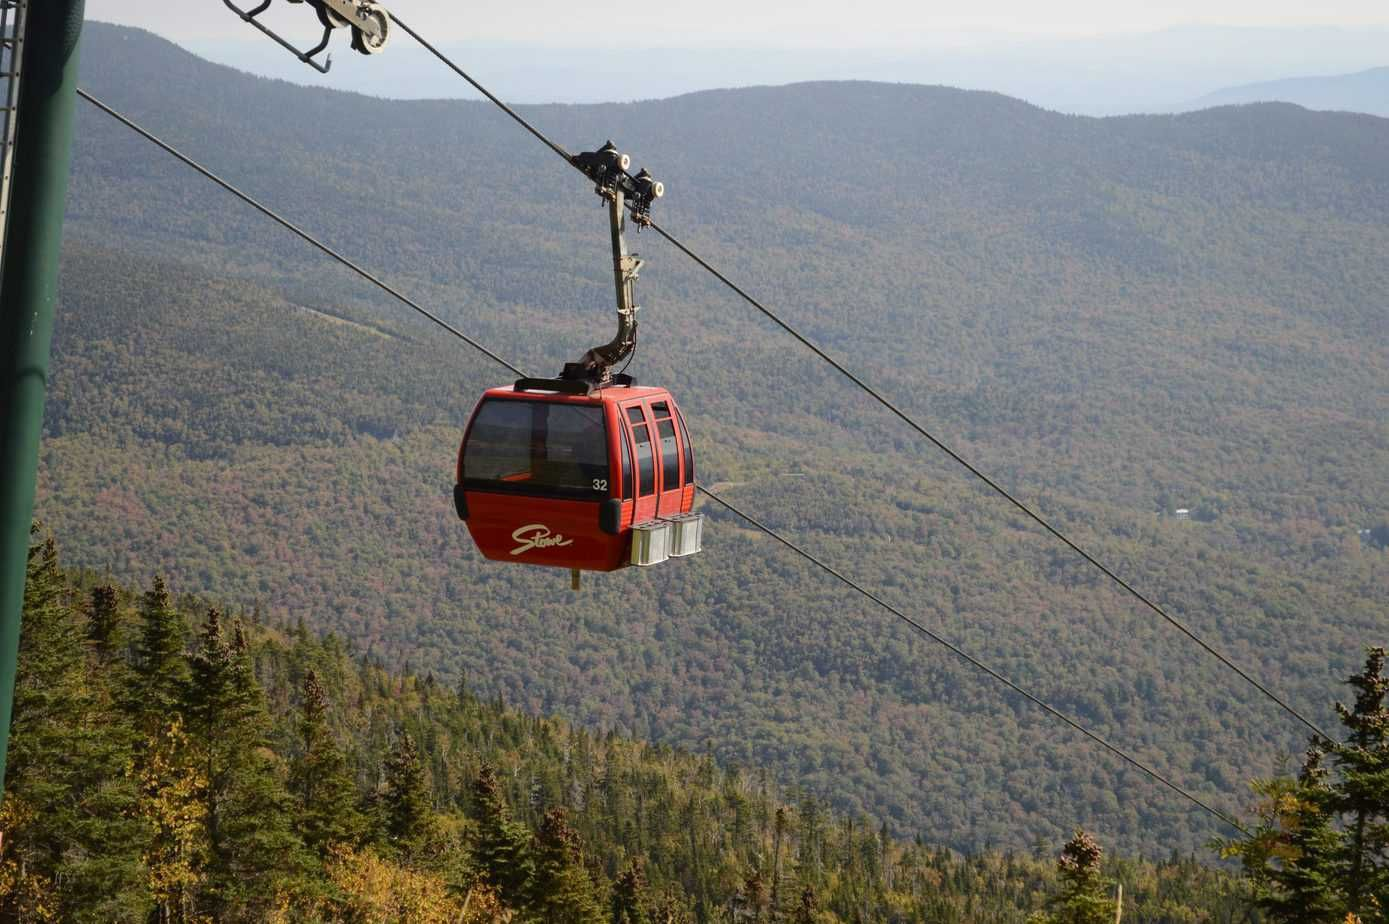 The Best (and Most Romantic) Things To Do In Stowe, VT